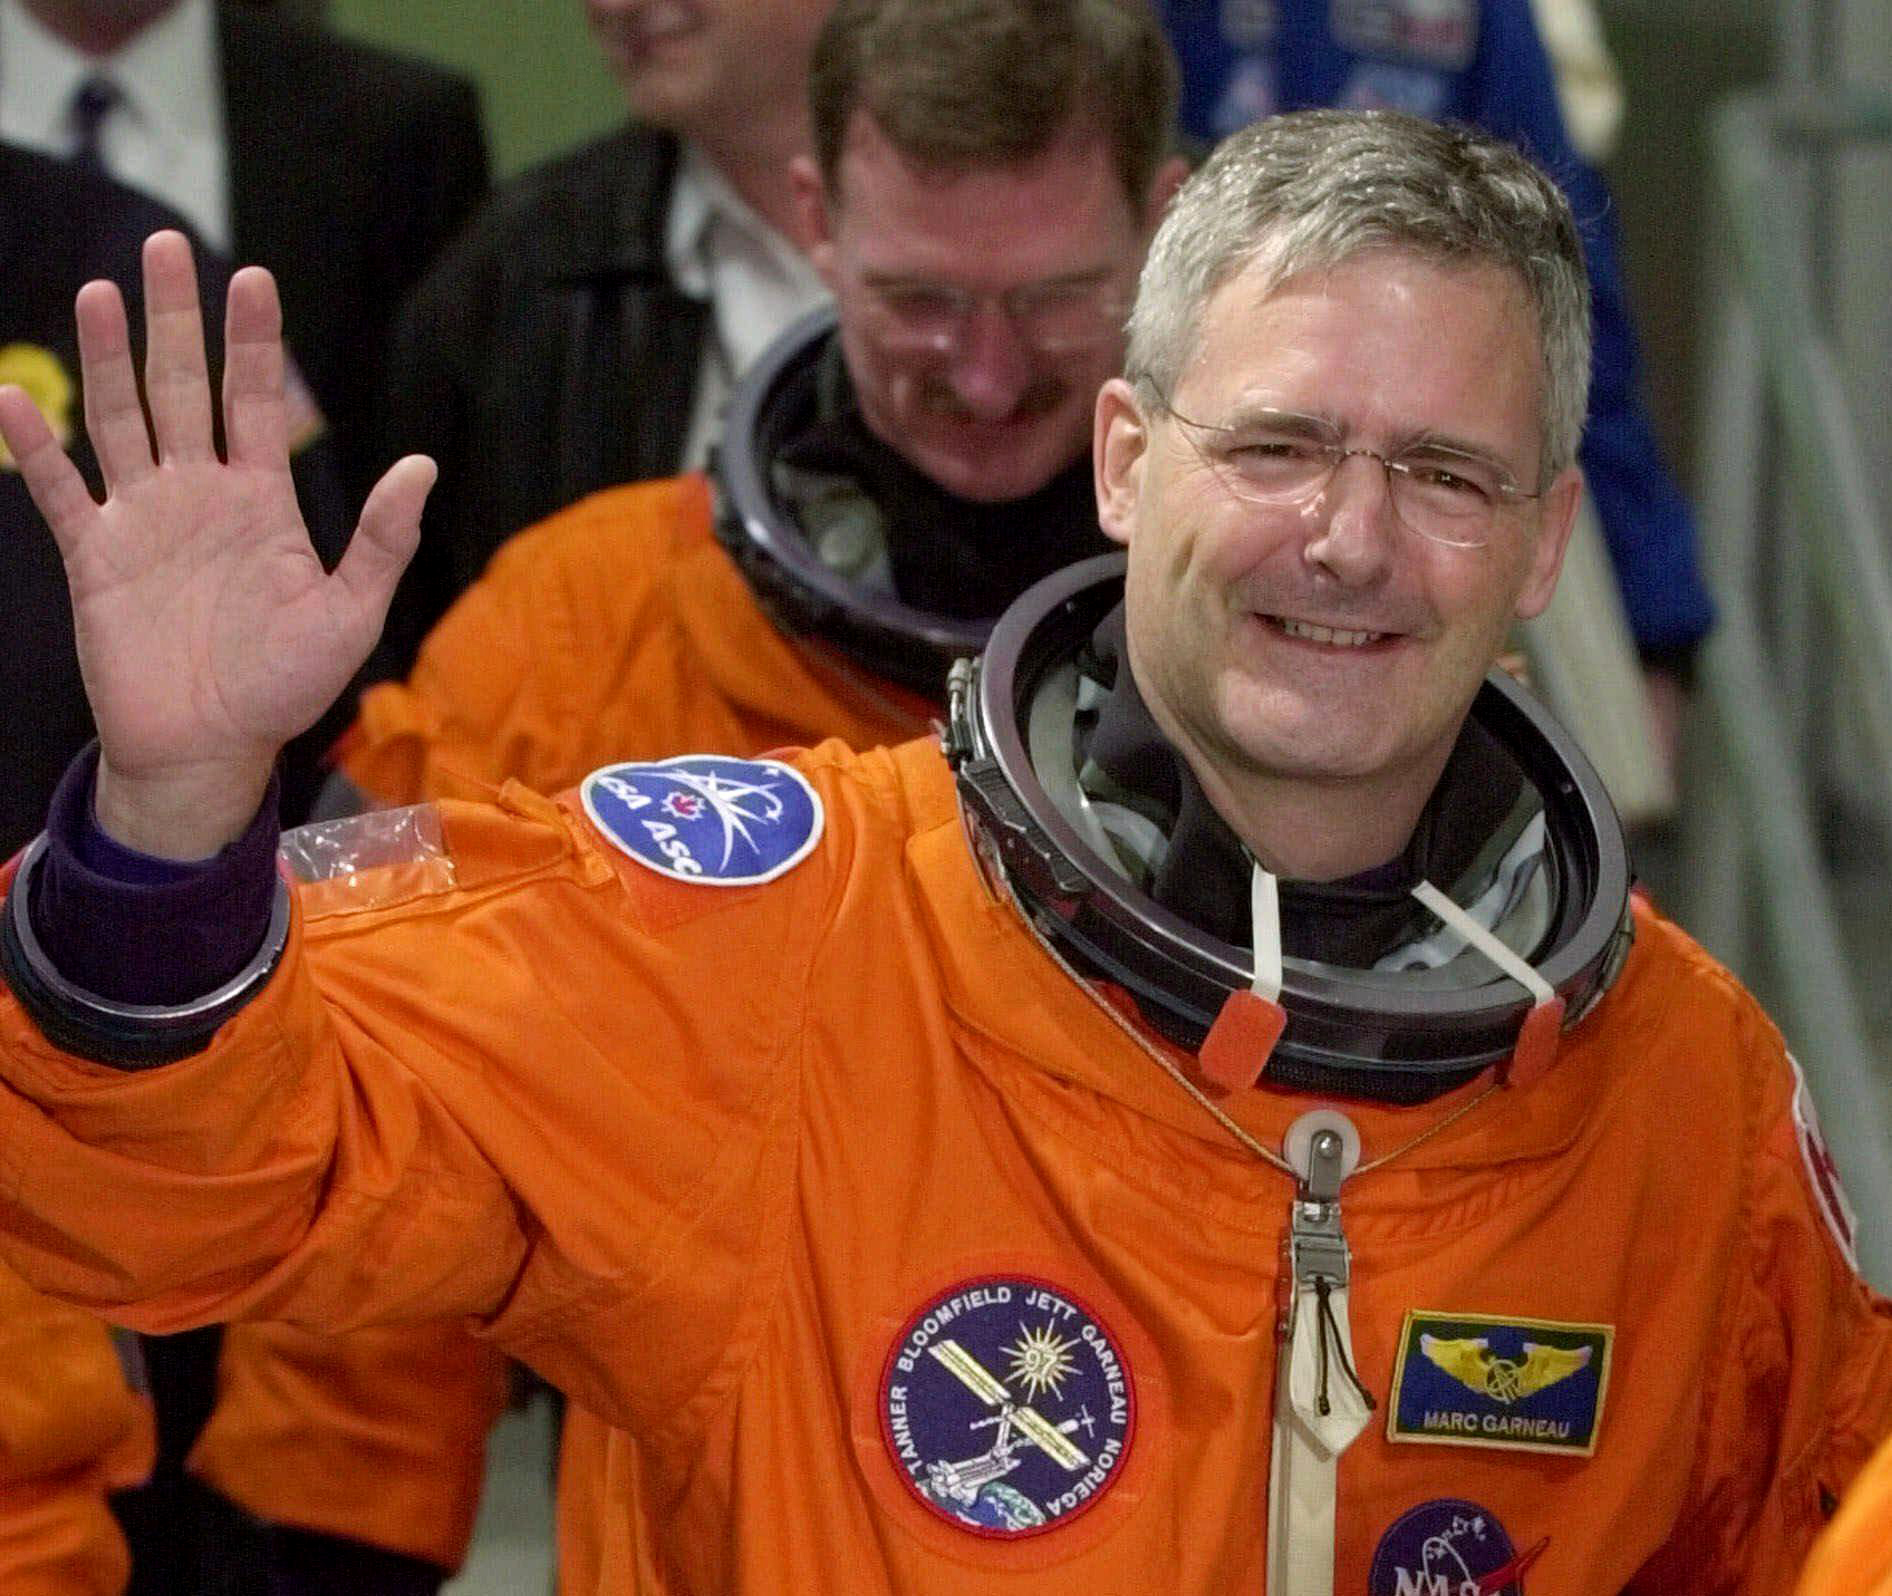 File-This Nov. 30, 2000 file photo shows mission specialist Marc Garneau of Canada waving to photographers as he leaves the Operations and Checkout Building.